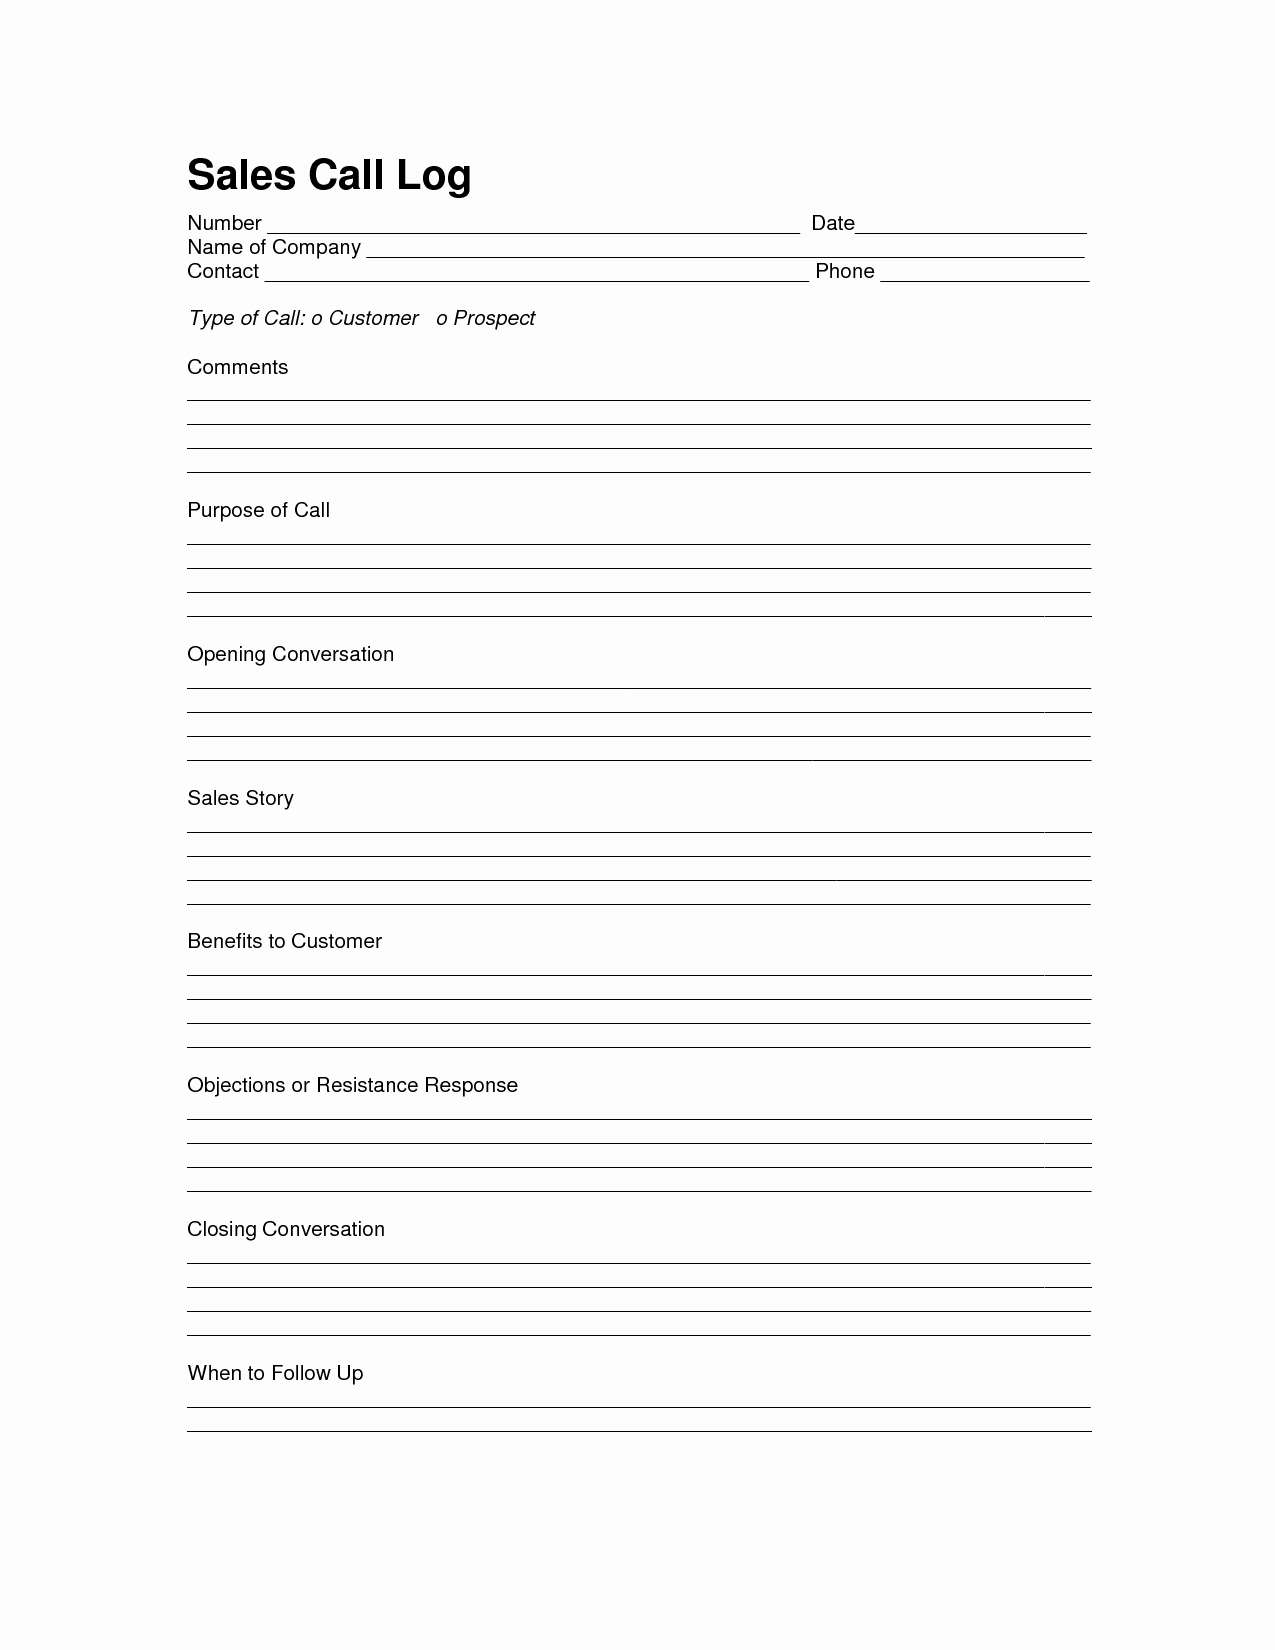 Sales Log Sheet Template Sales Call Log Template